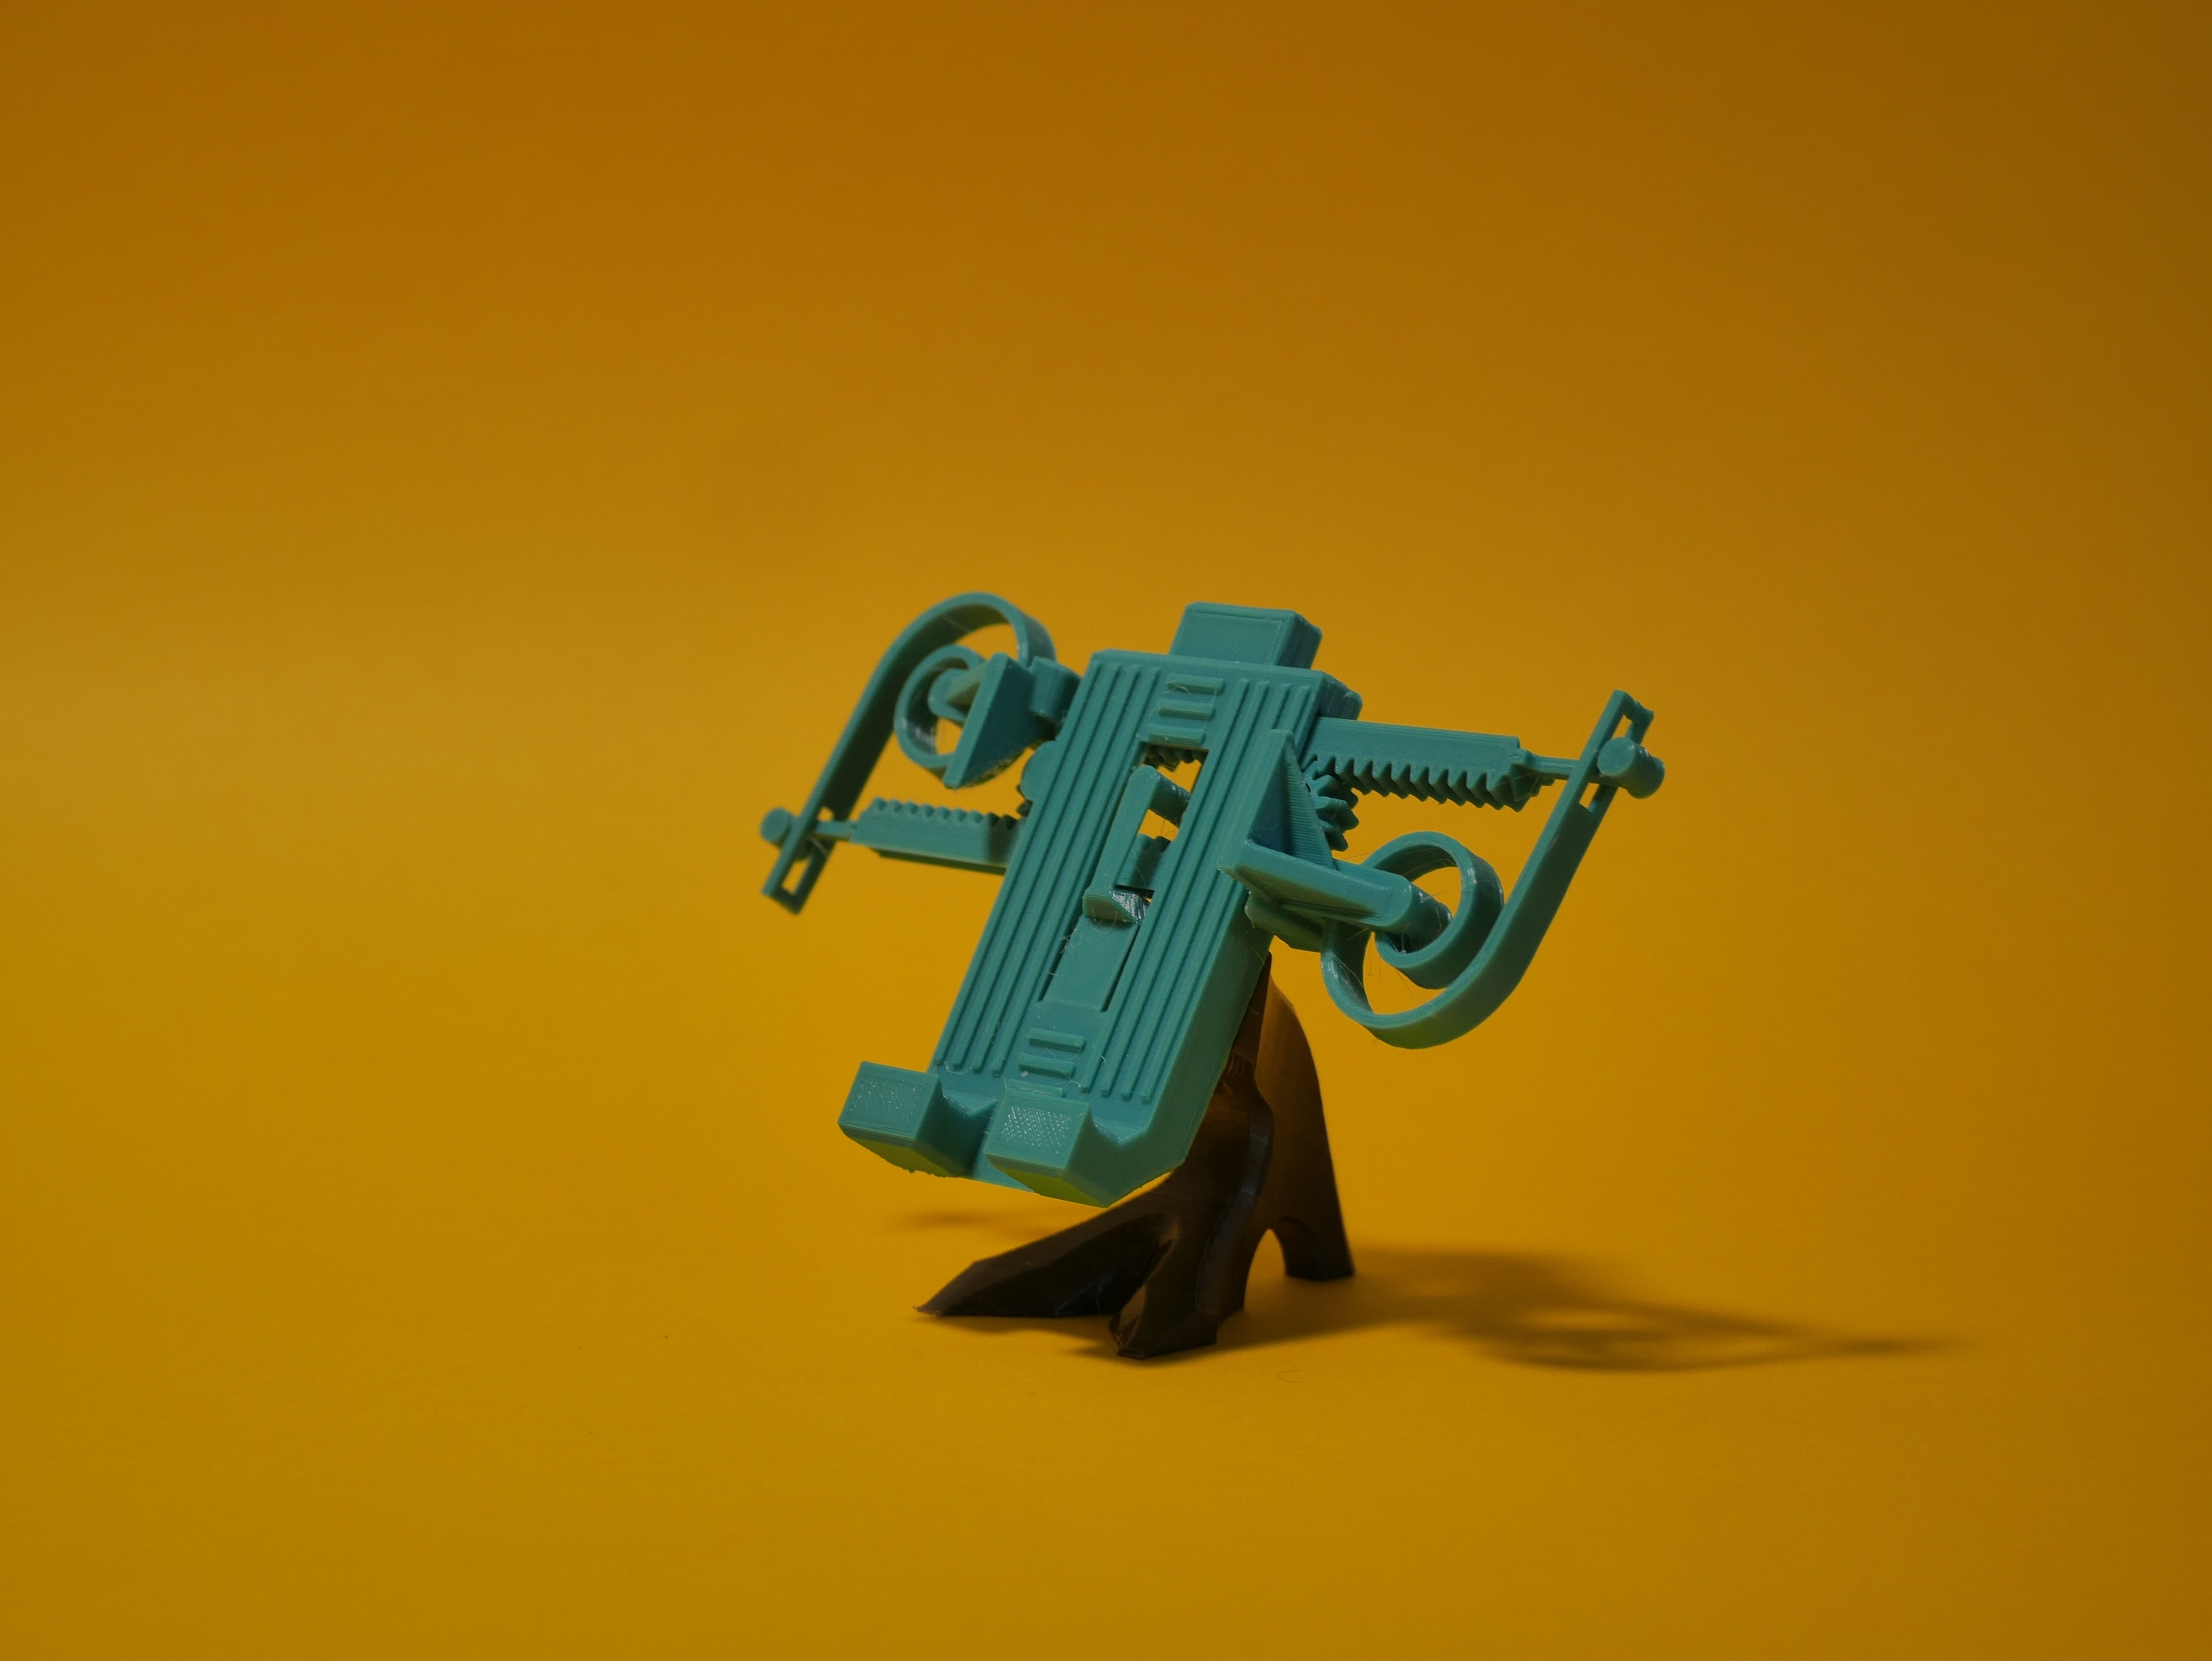 2.JPG Download free STL file PRINT-IN-PLACE PHONE HOLDER - FOR SPACE?! • 3D print object, SunShine